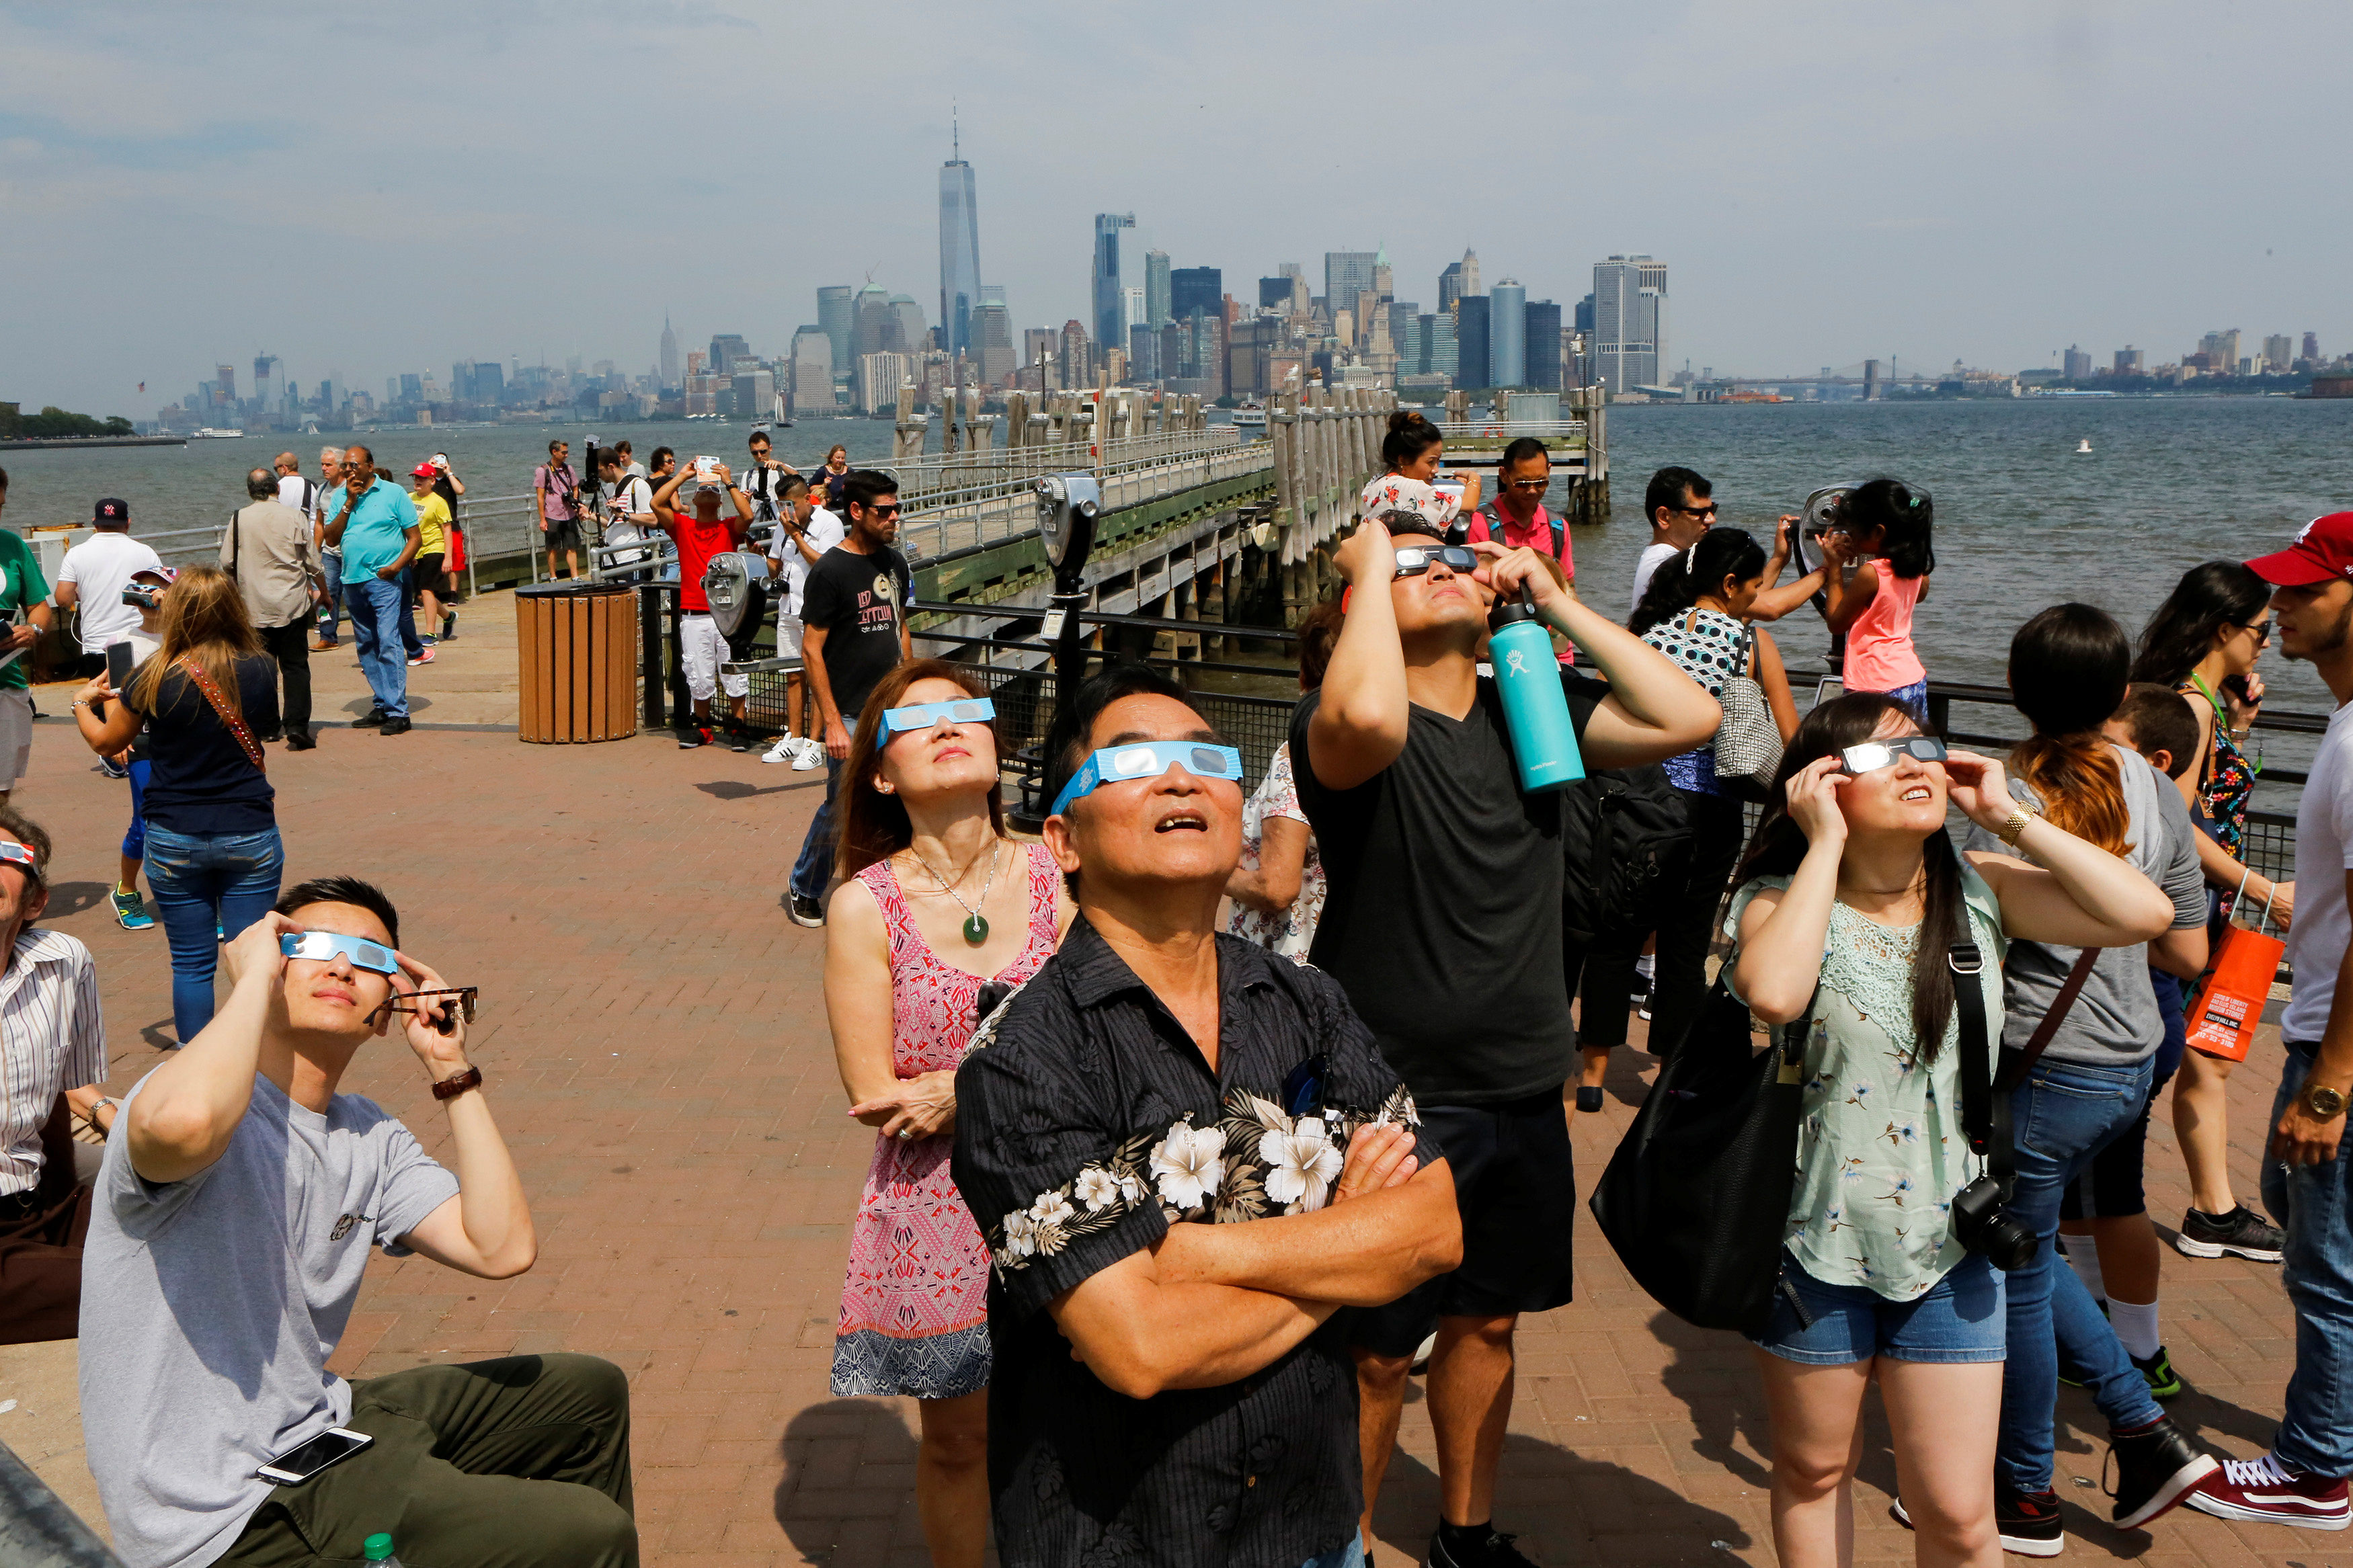 People view the solar eclipse at Liberty State Island as the Lower Manhattan and One World Trade center are seen in the background in New York